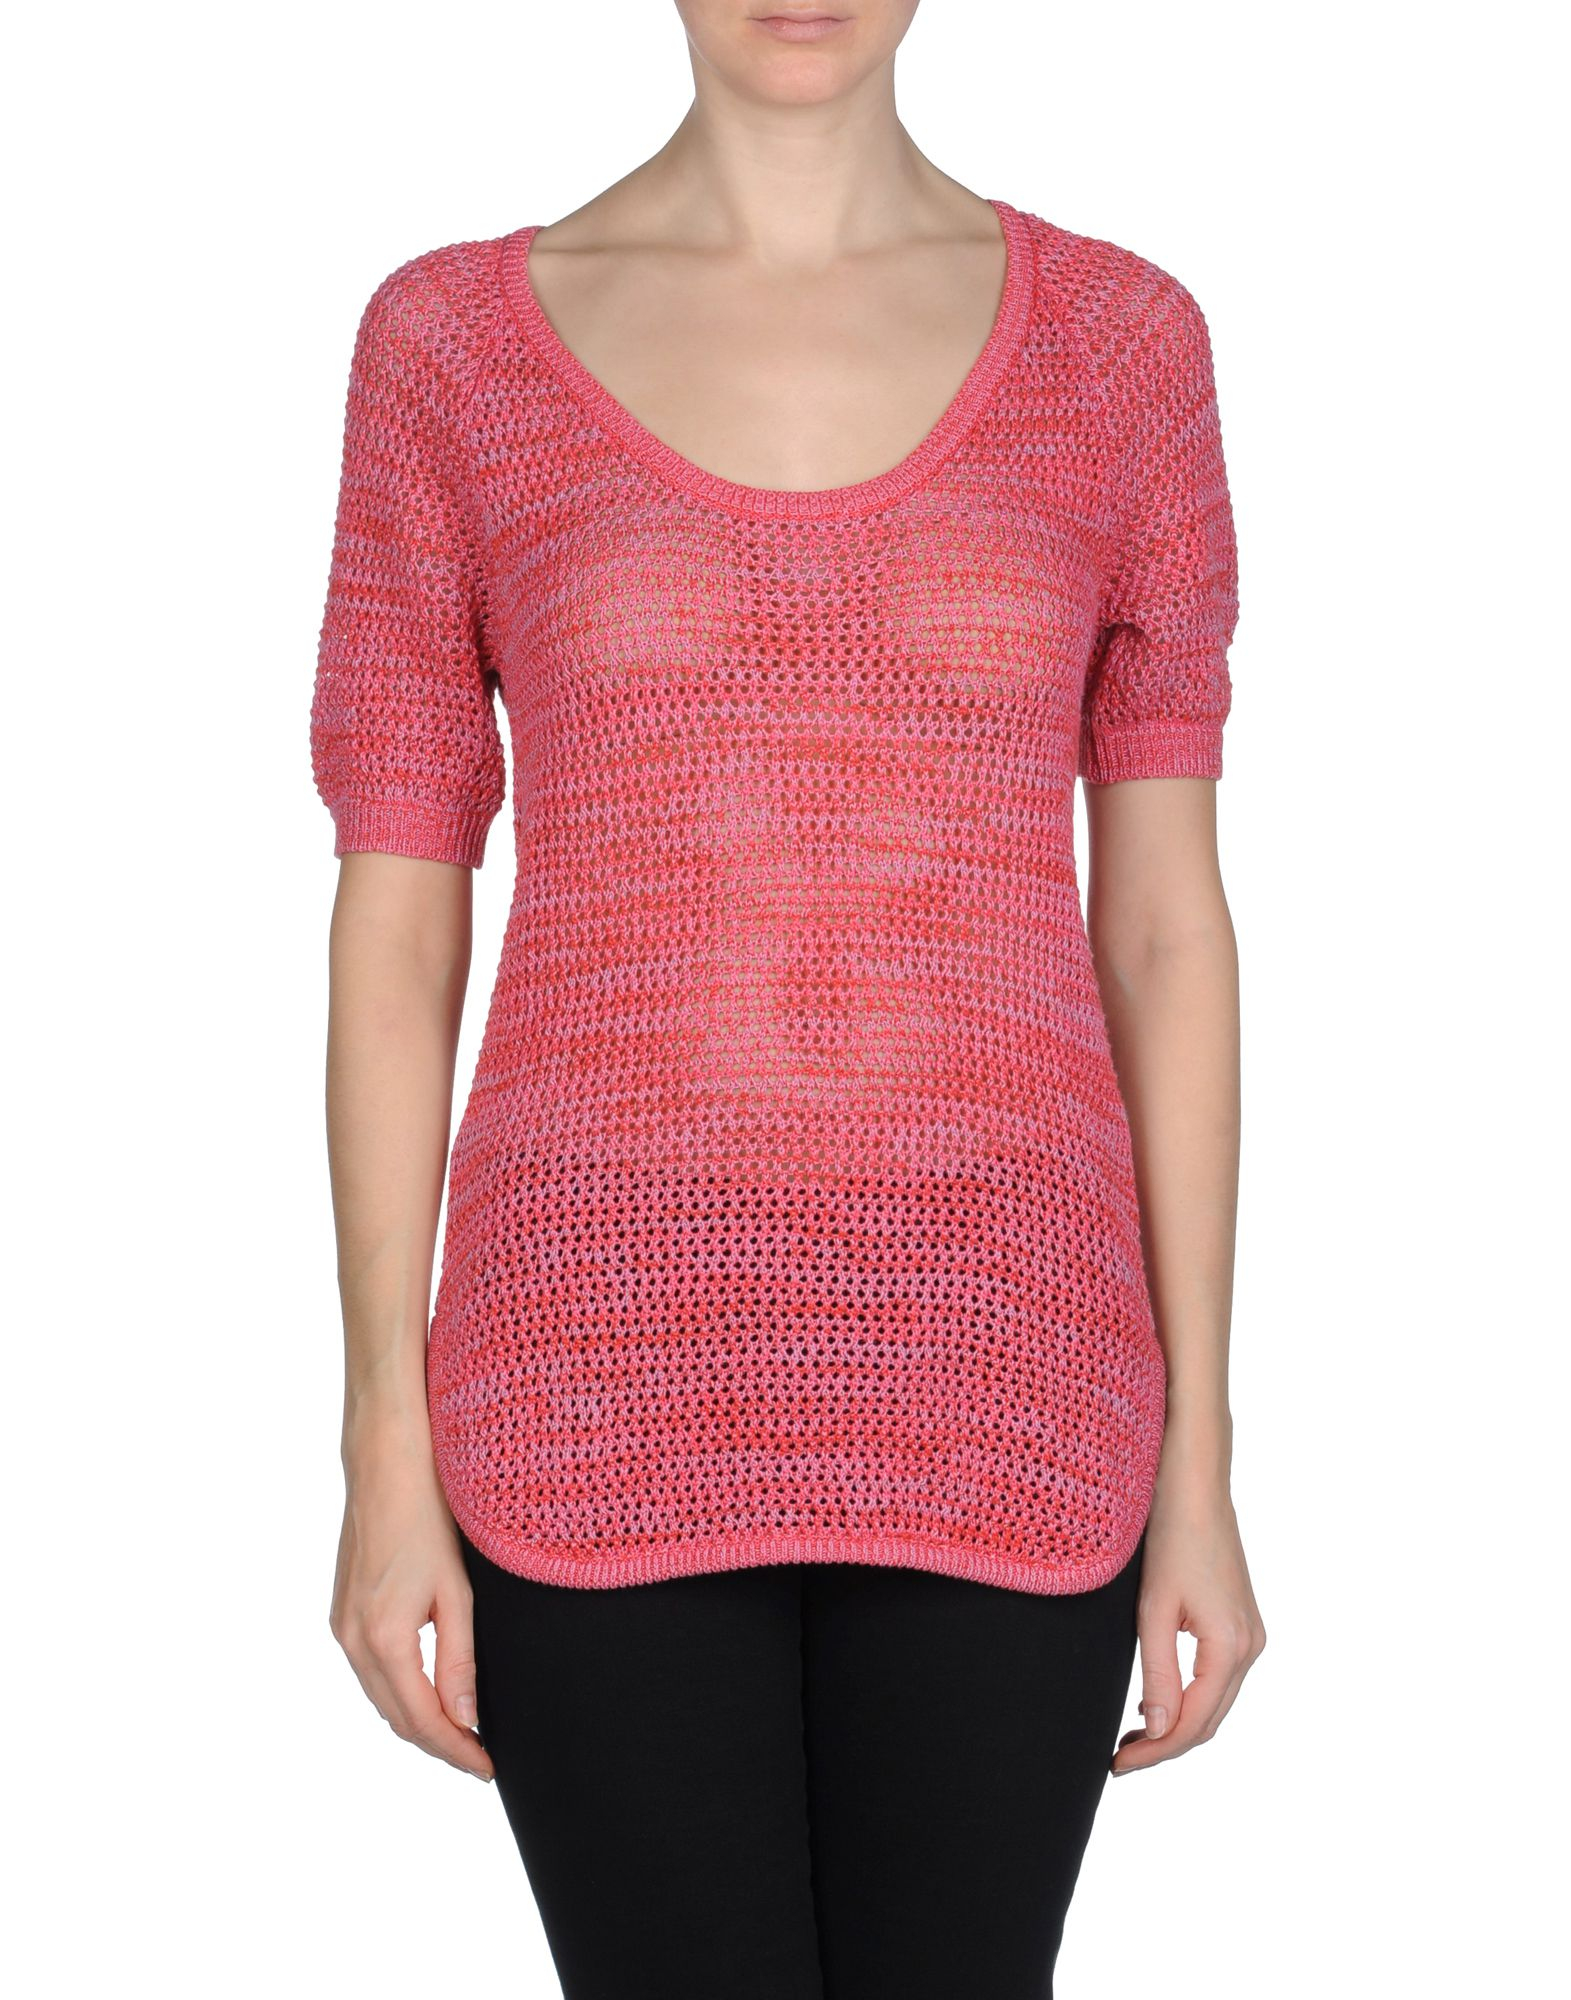 See by chloé Short Sleeve Sweater in Pink | Lyst